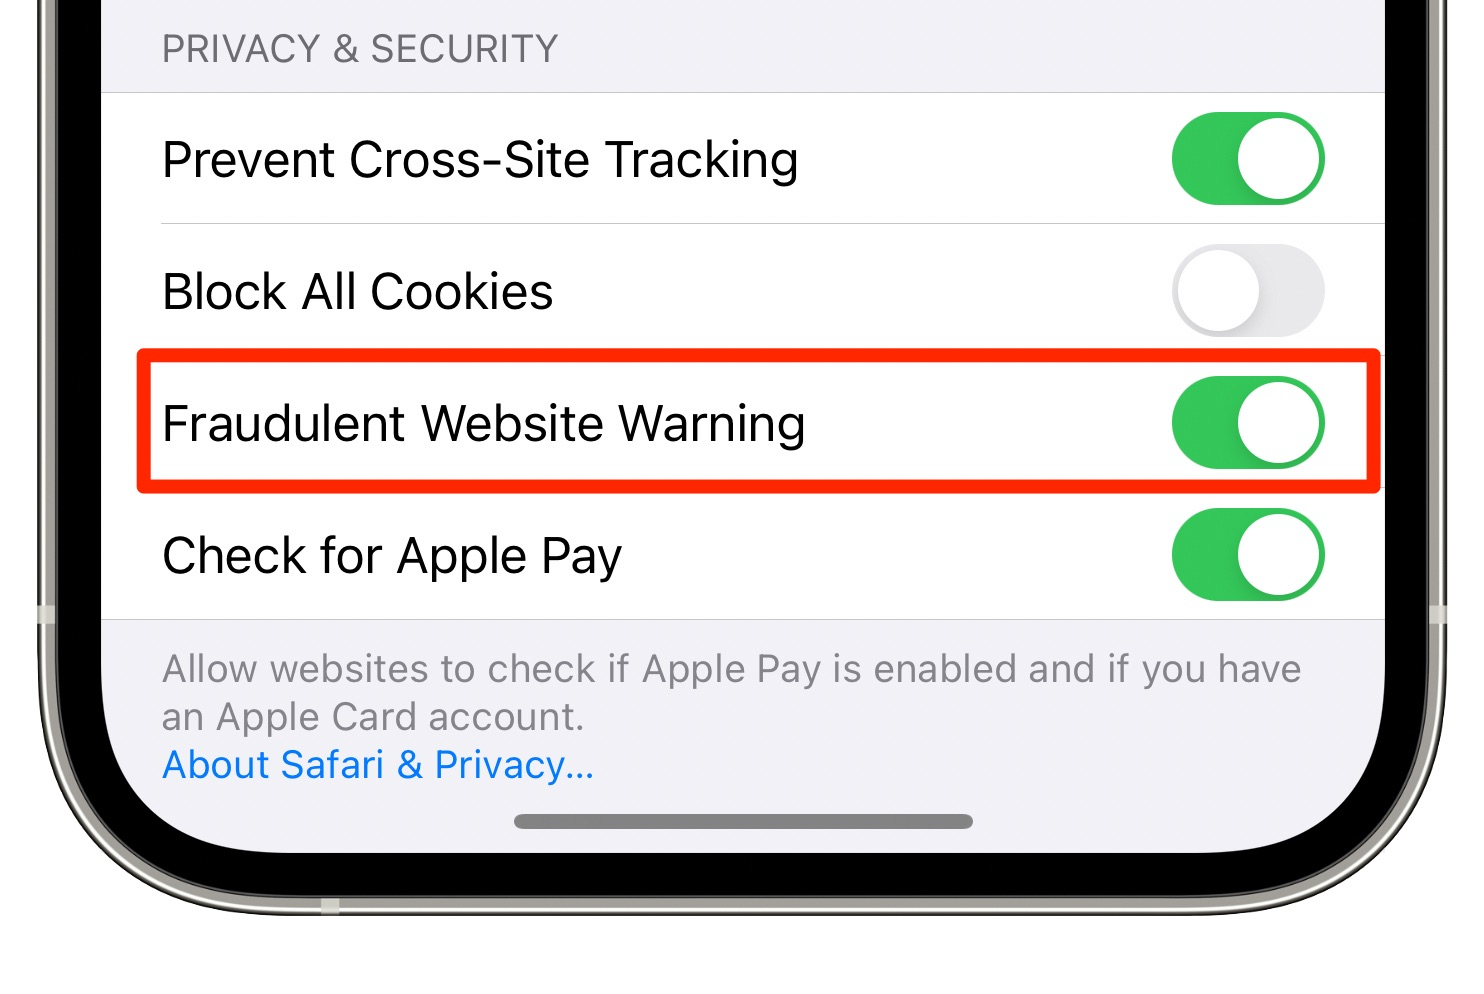 An iPhone screenshot showing the Security & Privacy section of the Safari settings with the Fraudulent Website Warning feature switched on